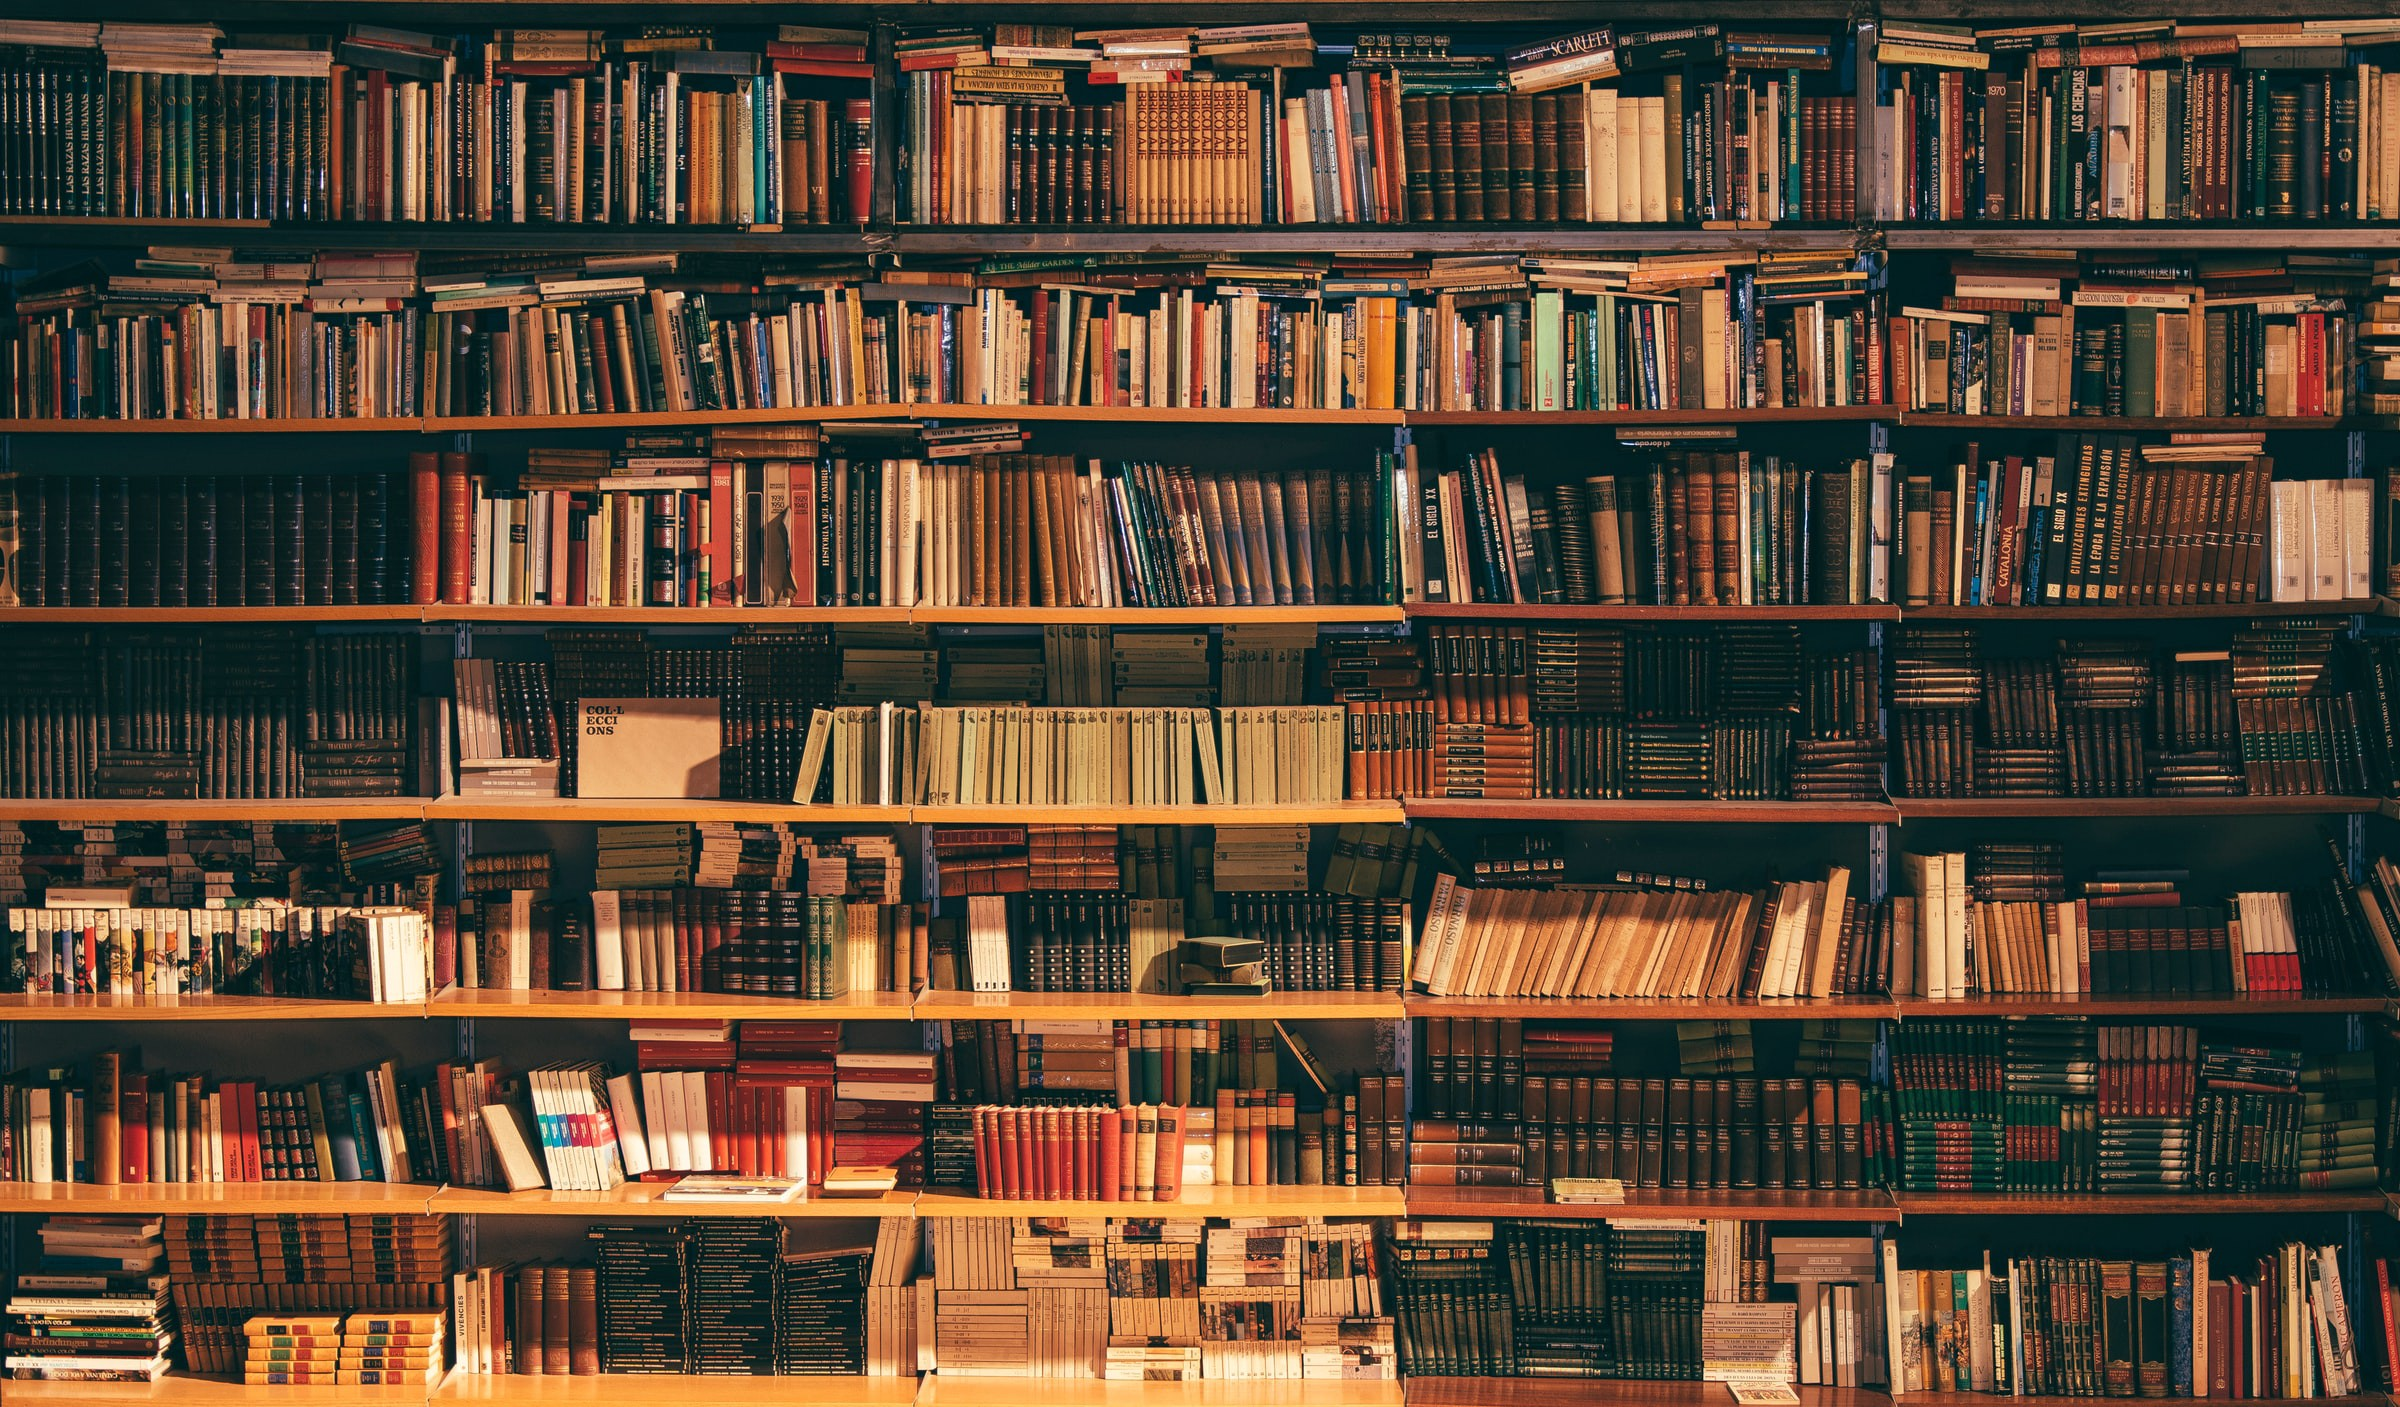 View of a large bookshelf in a library, filled with dozens of books.